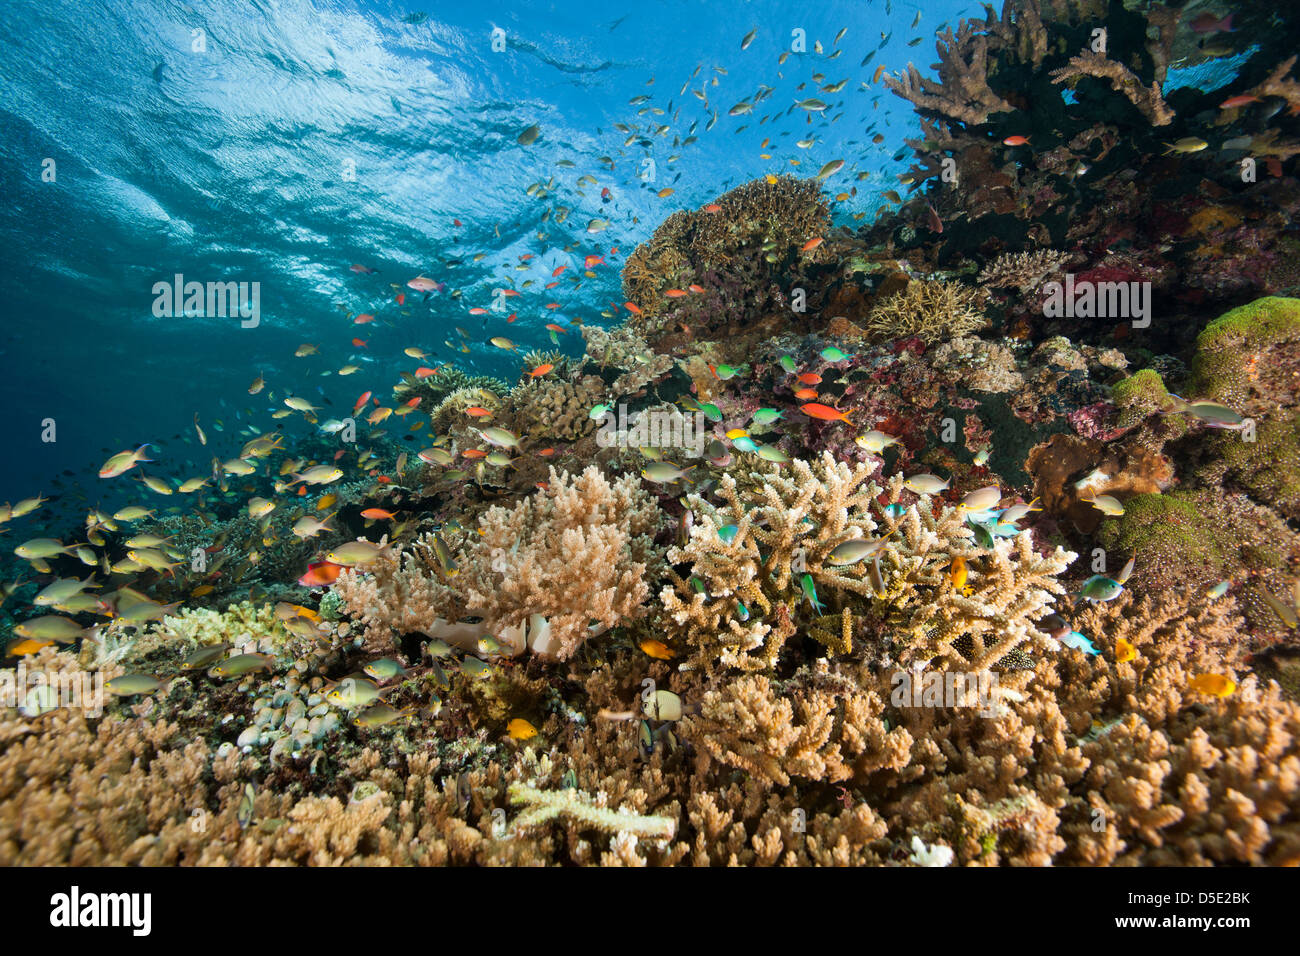 Schools of tropical fish with soft and hard corals on a reef off Menjangan Island Bali, Indonesia. - Stock Image